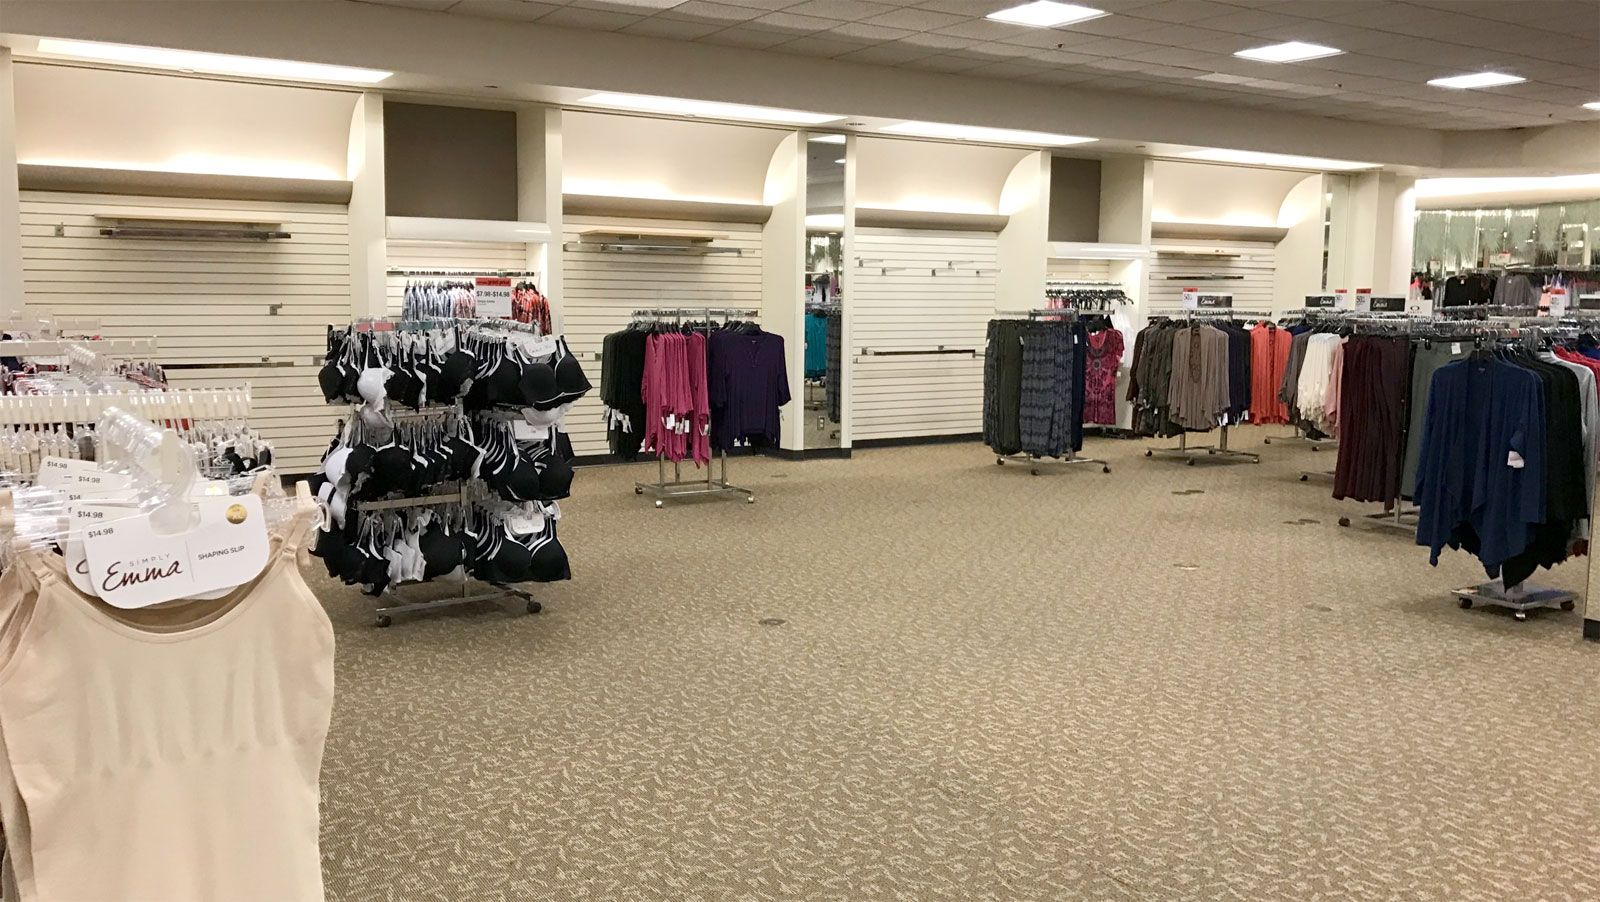 Sears lack of inventory